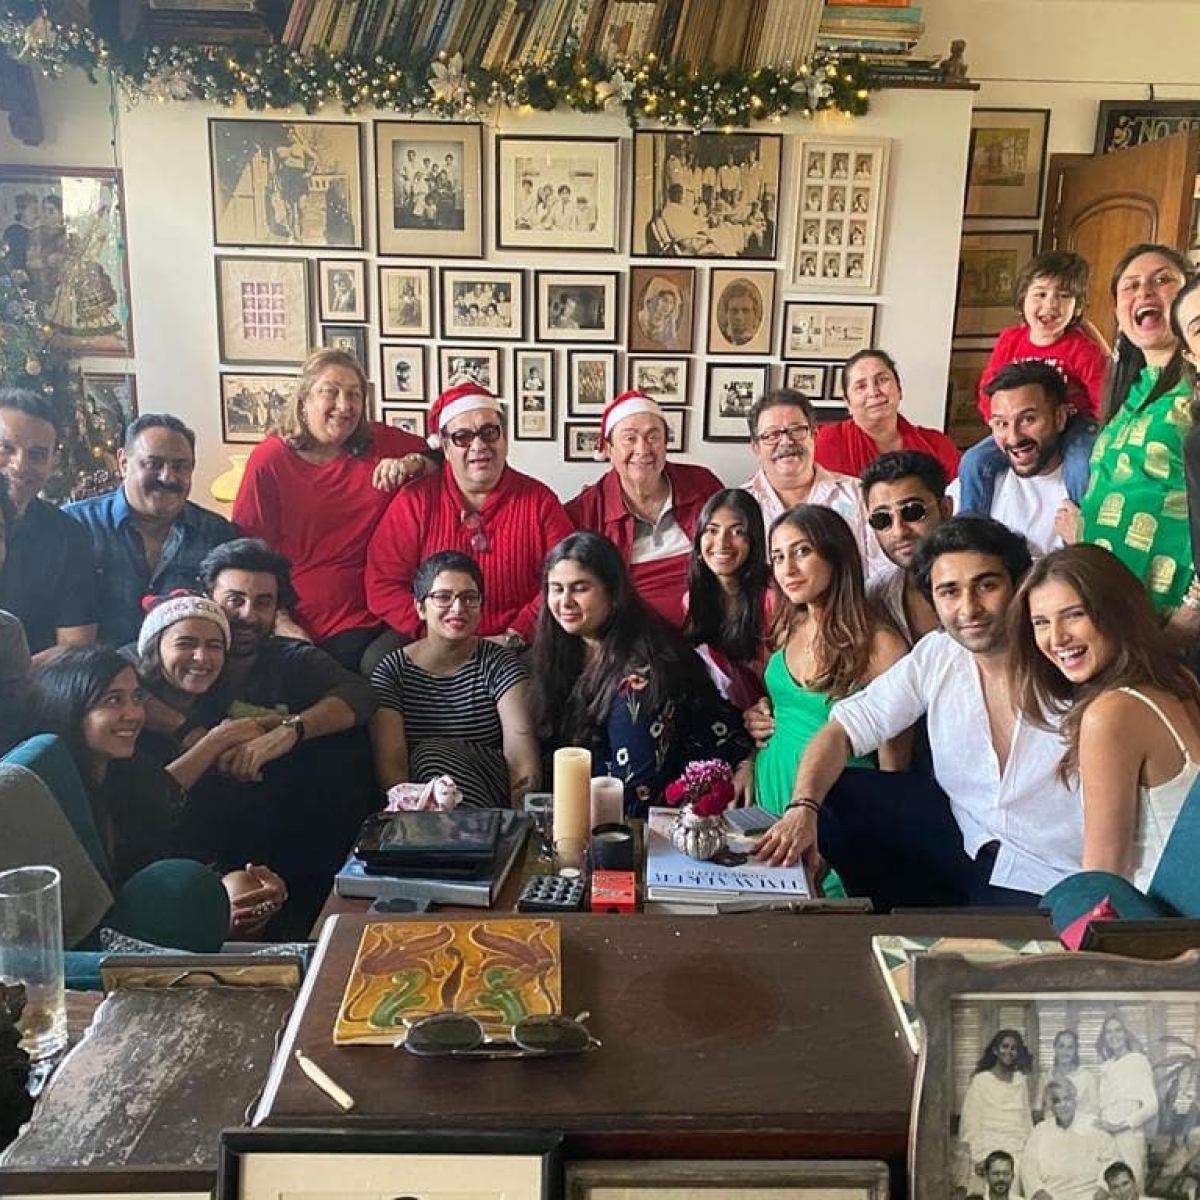 Alia Bhatt, Tara Sutaria pose with the Kapoor clan for the perfect family pic